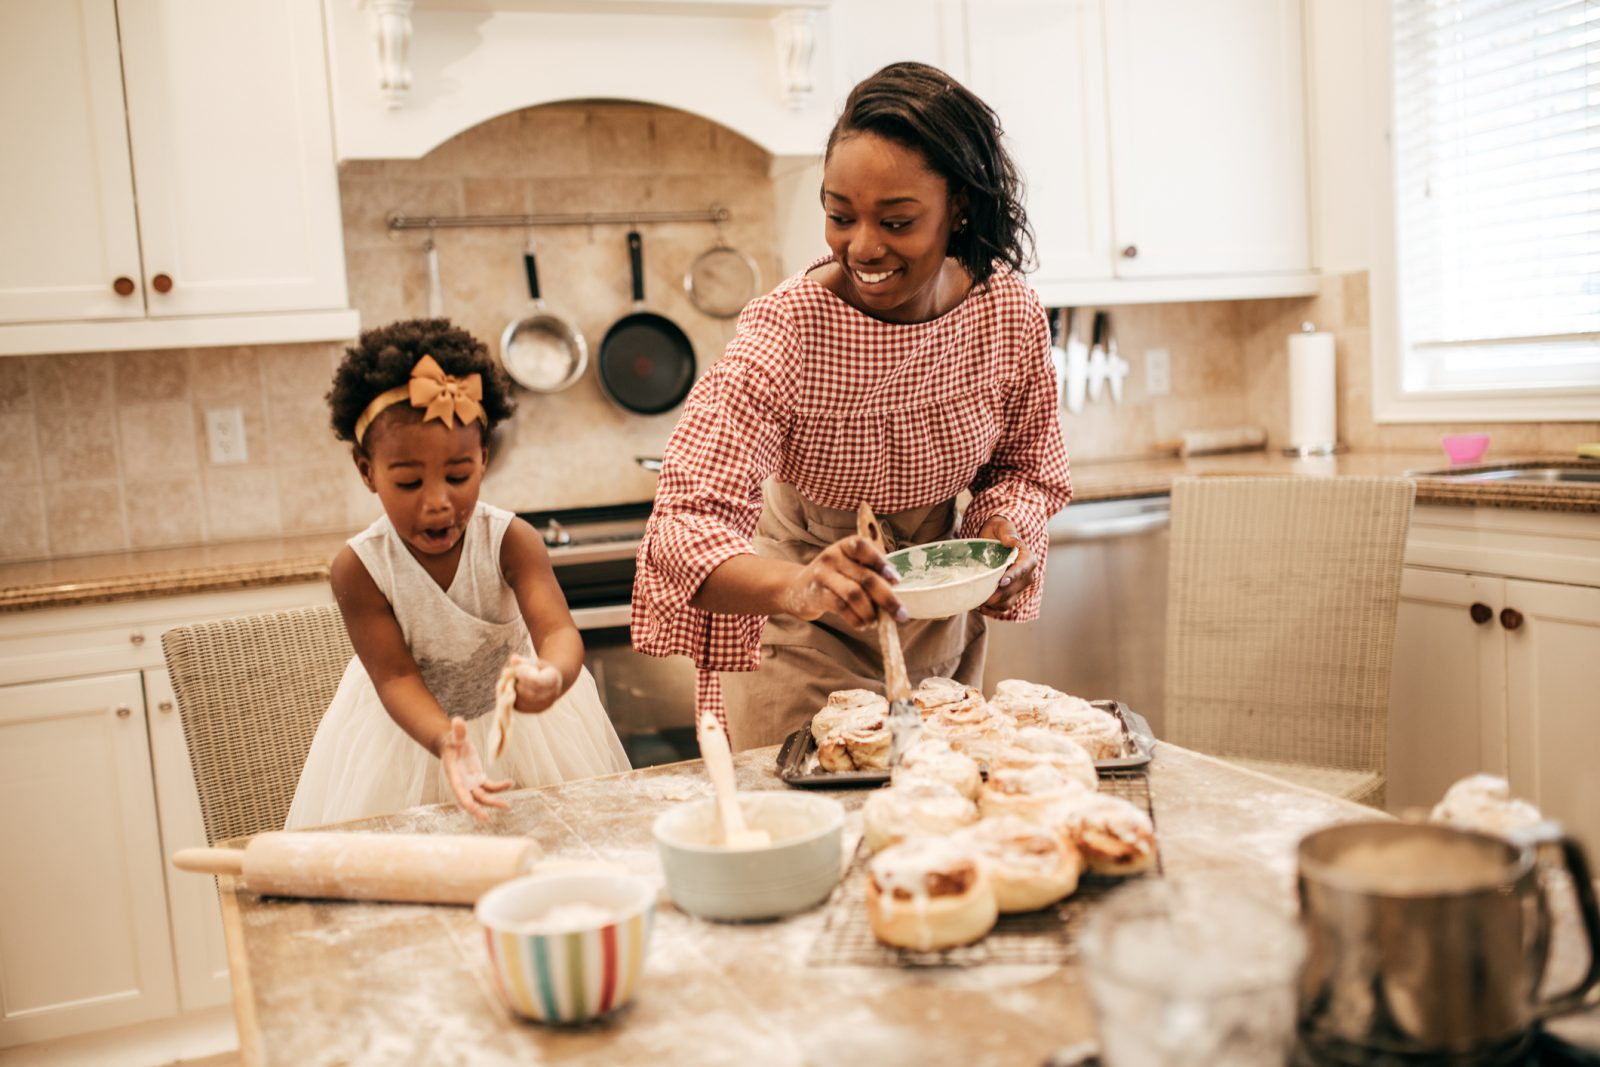 How Your Baked Goods are Affected by Indoor Climate